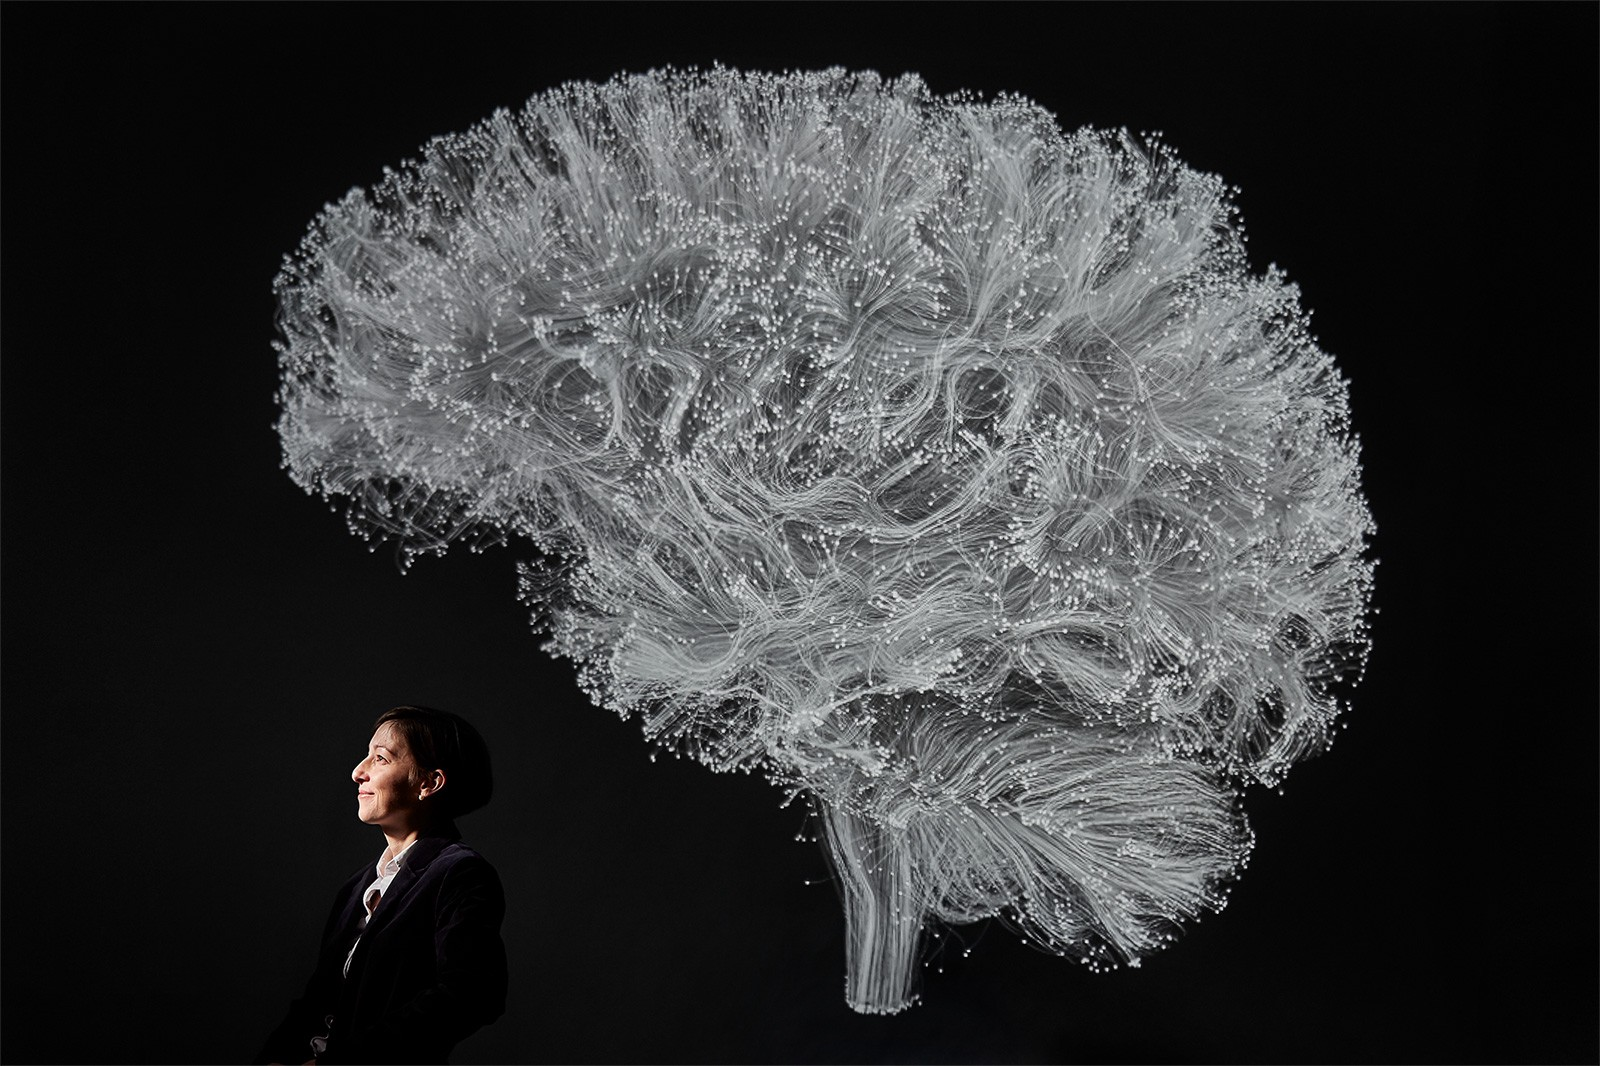 Professor Danielle Bassett poses under a black-and-white illustration of the brains complex structural network.